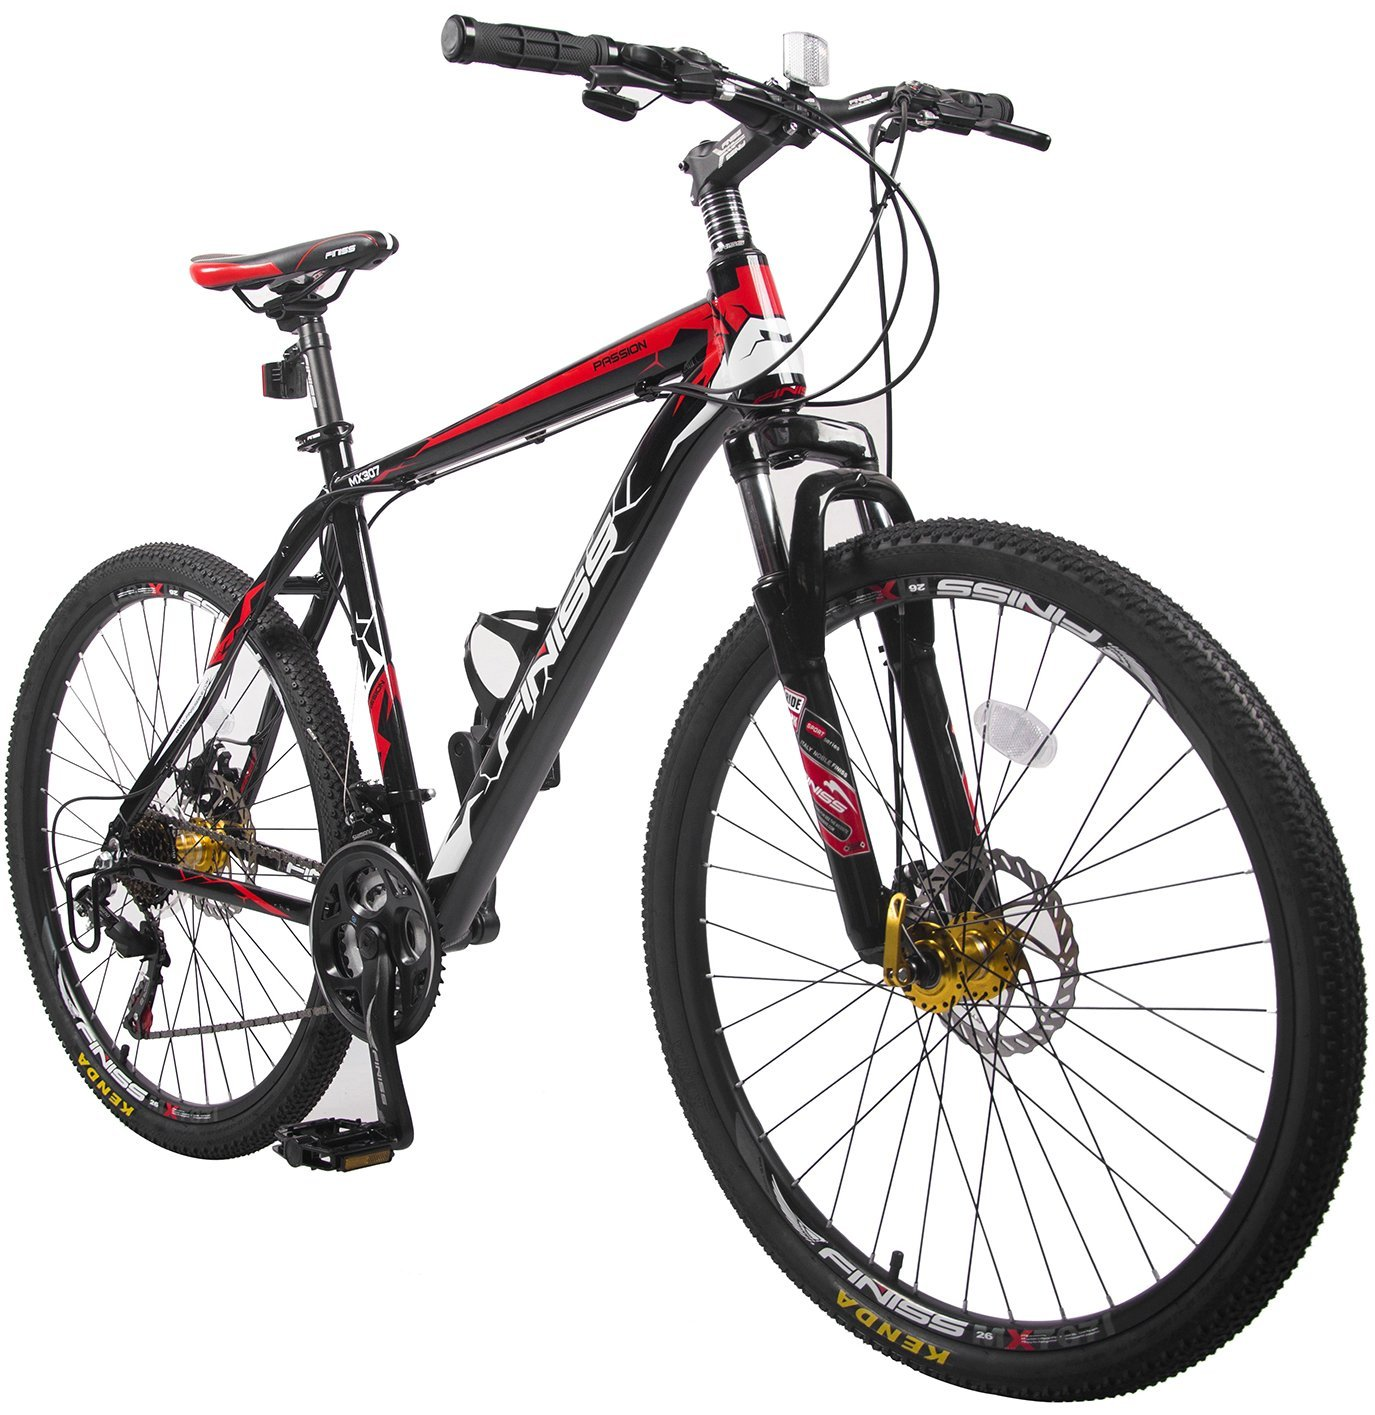 caeda39754f Top 10 Best Specialized Mountain Bikes in 2019 - Top Best Pro Review